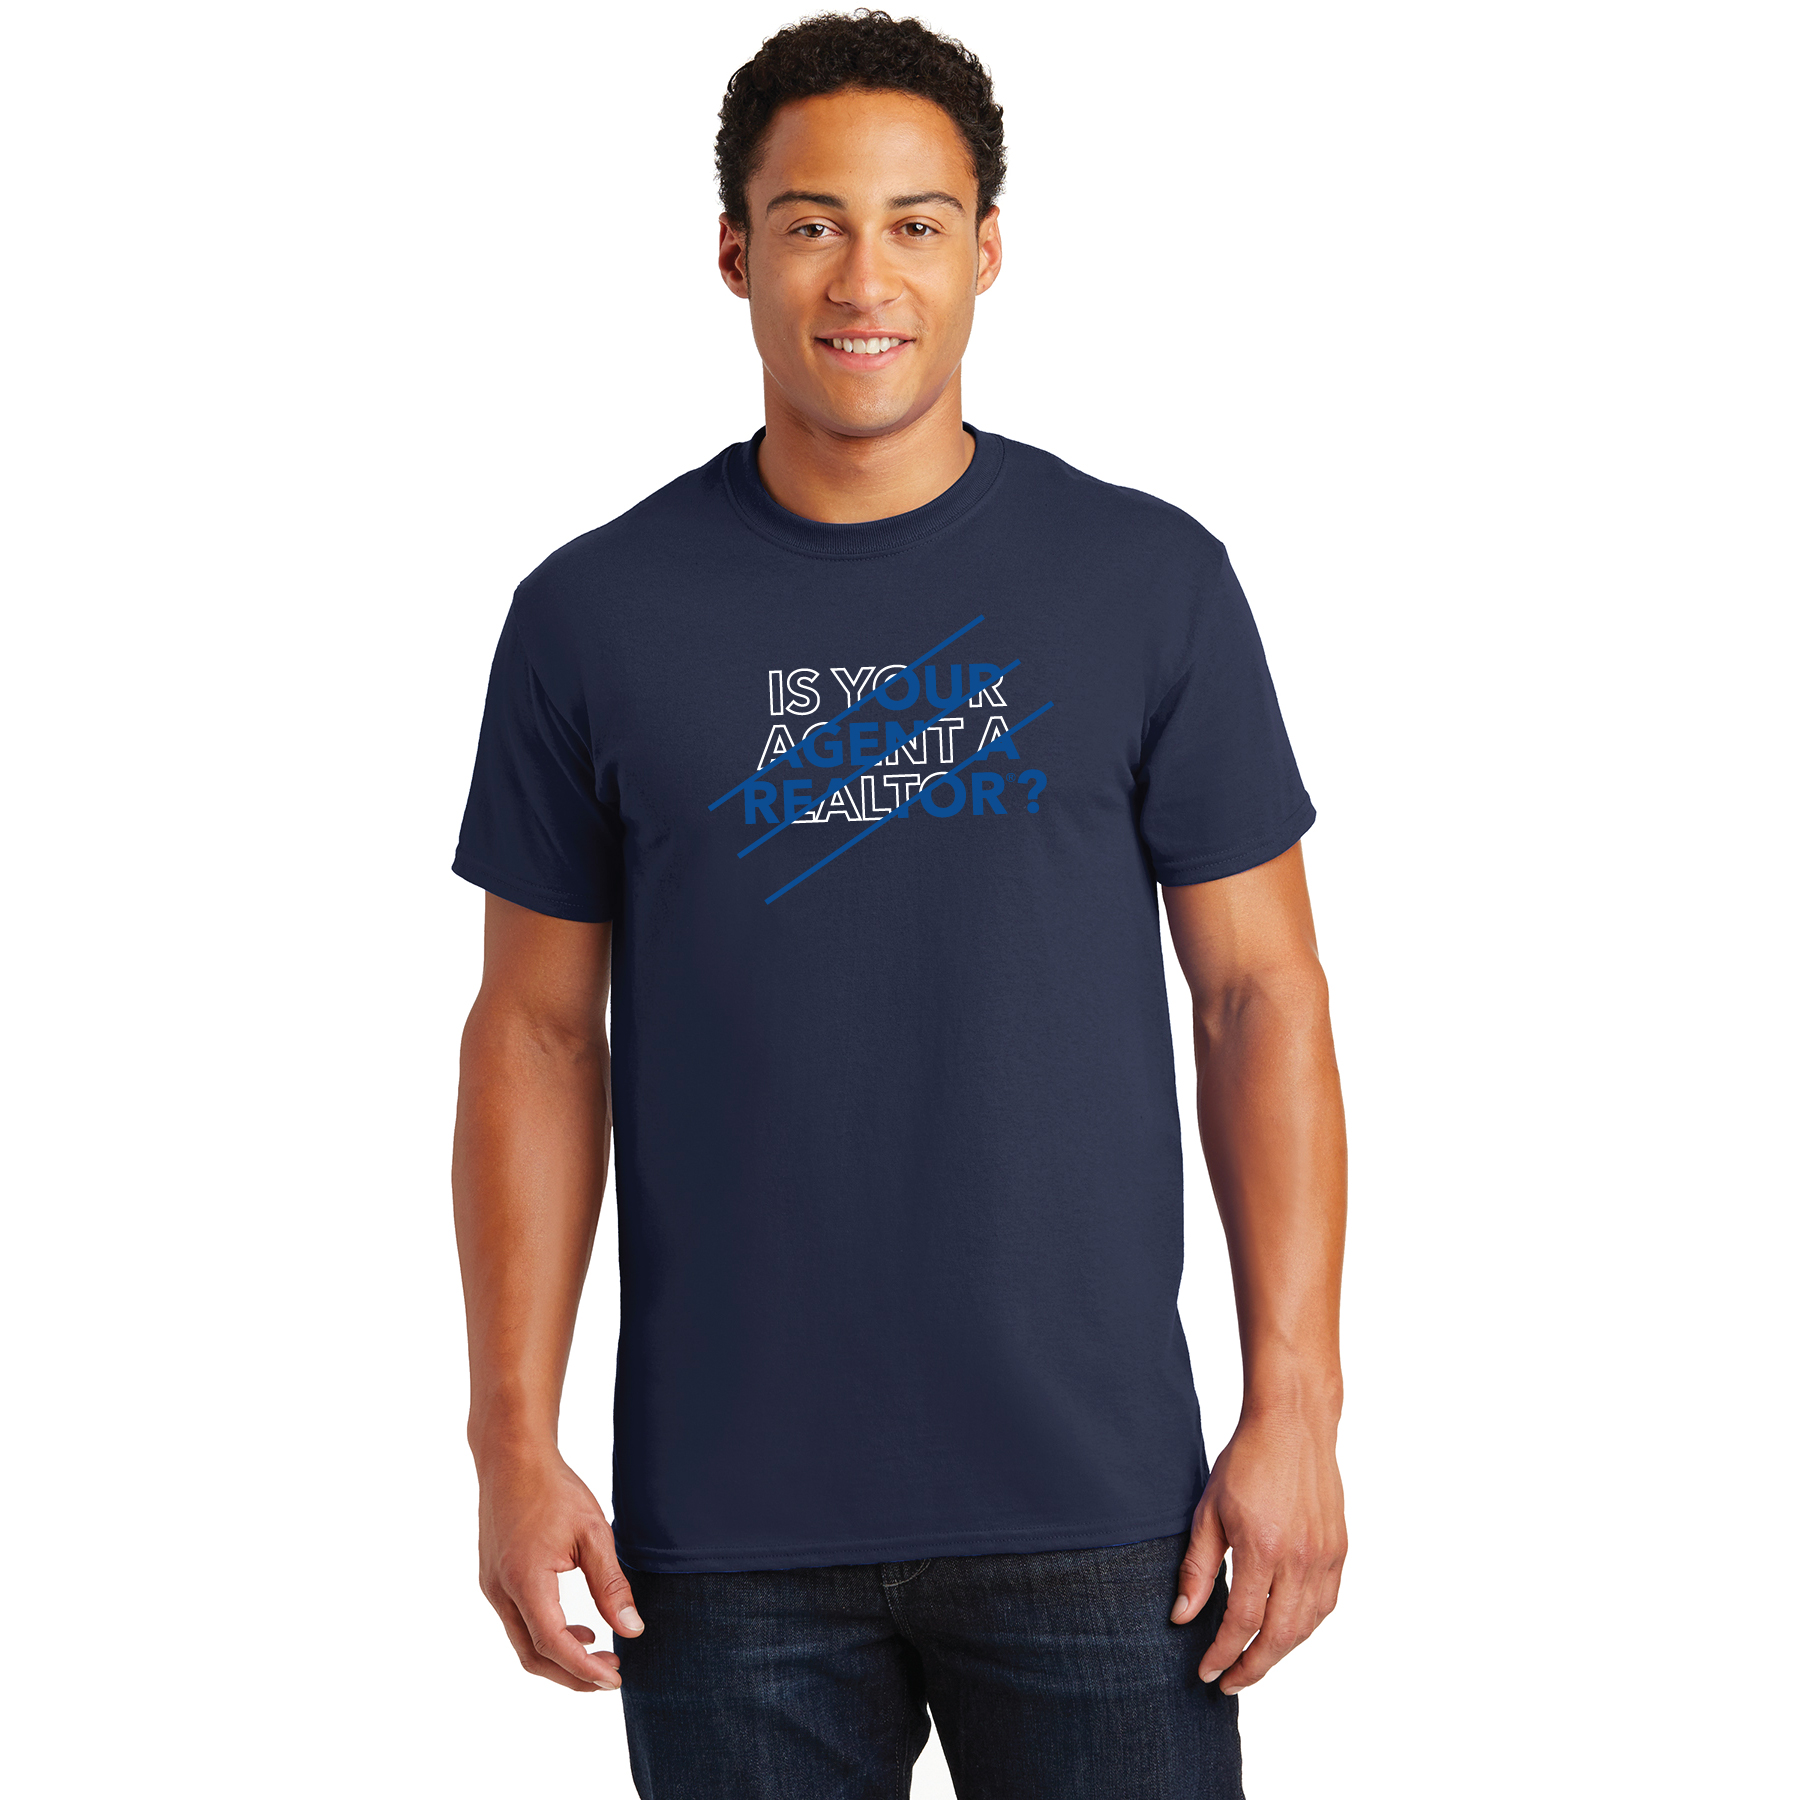 Is Your Agent a REALTOR® Navy Blue Tee Shirt - RCG1145